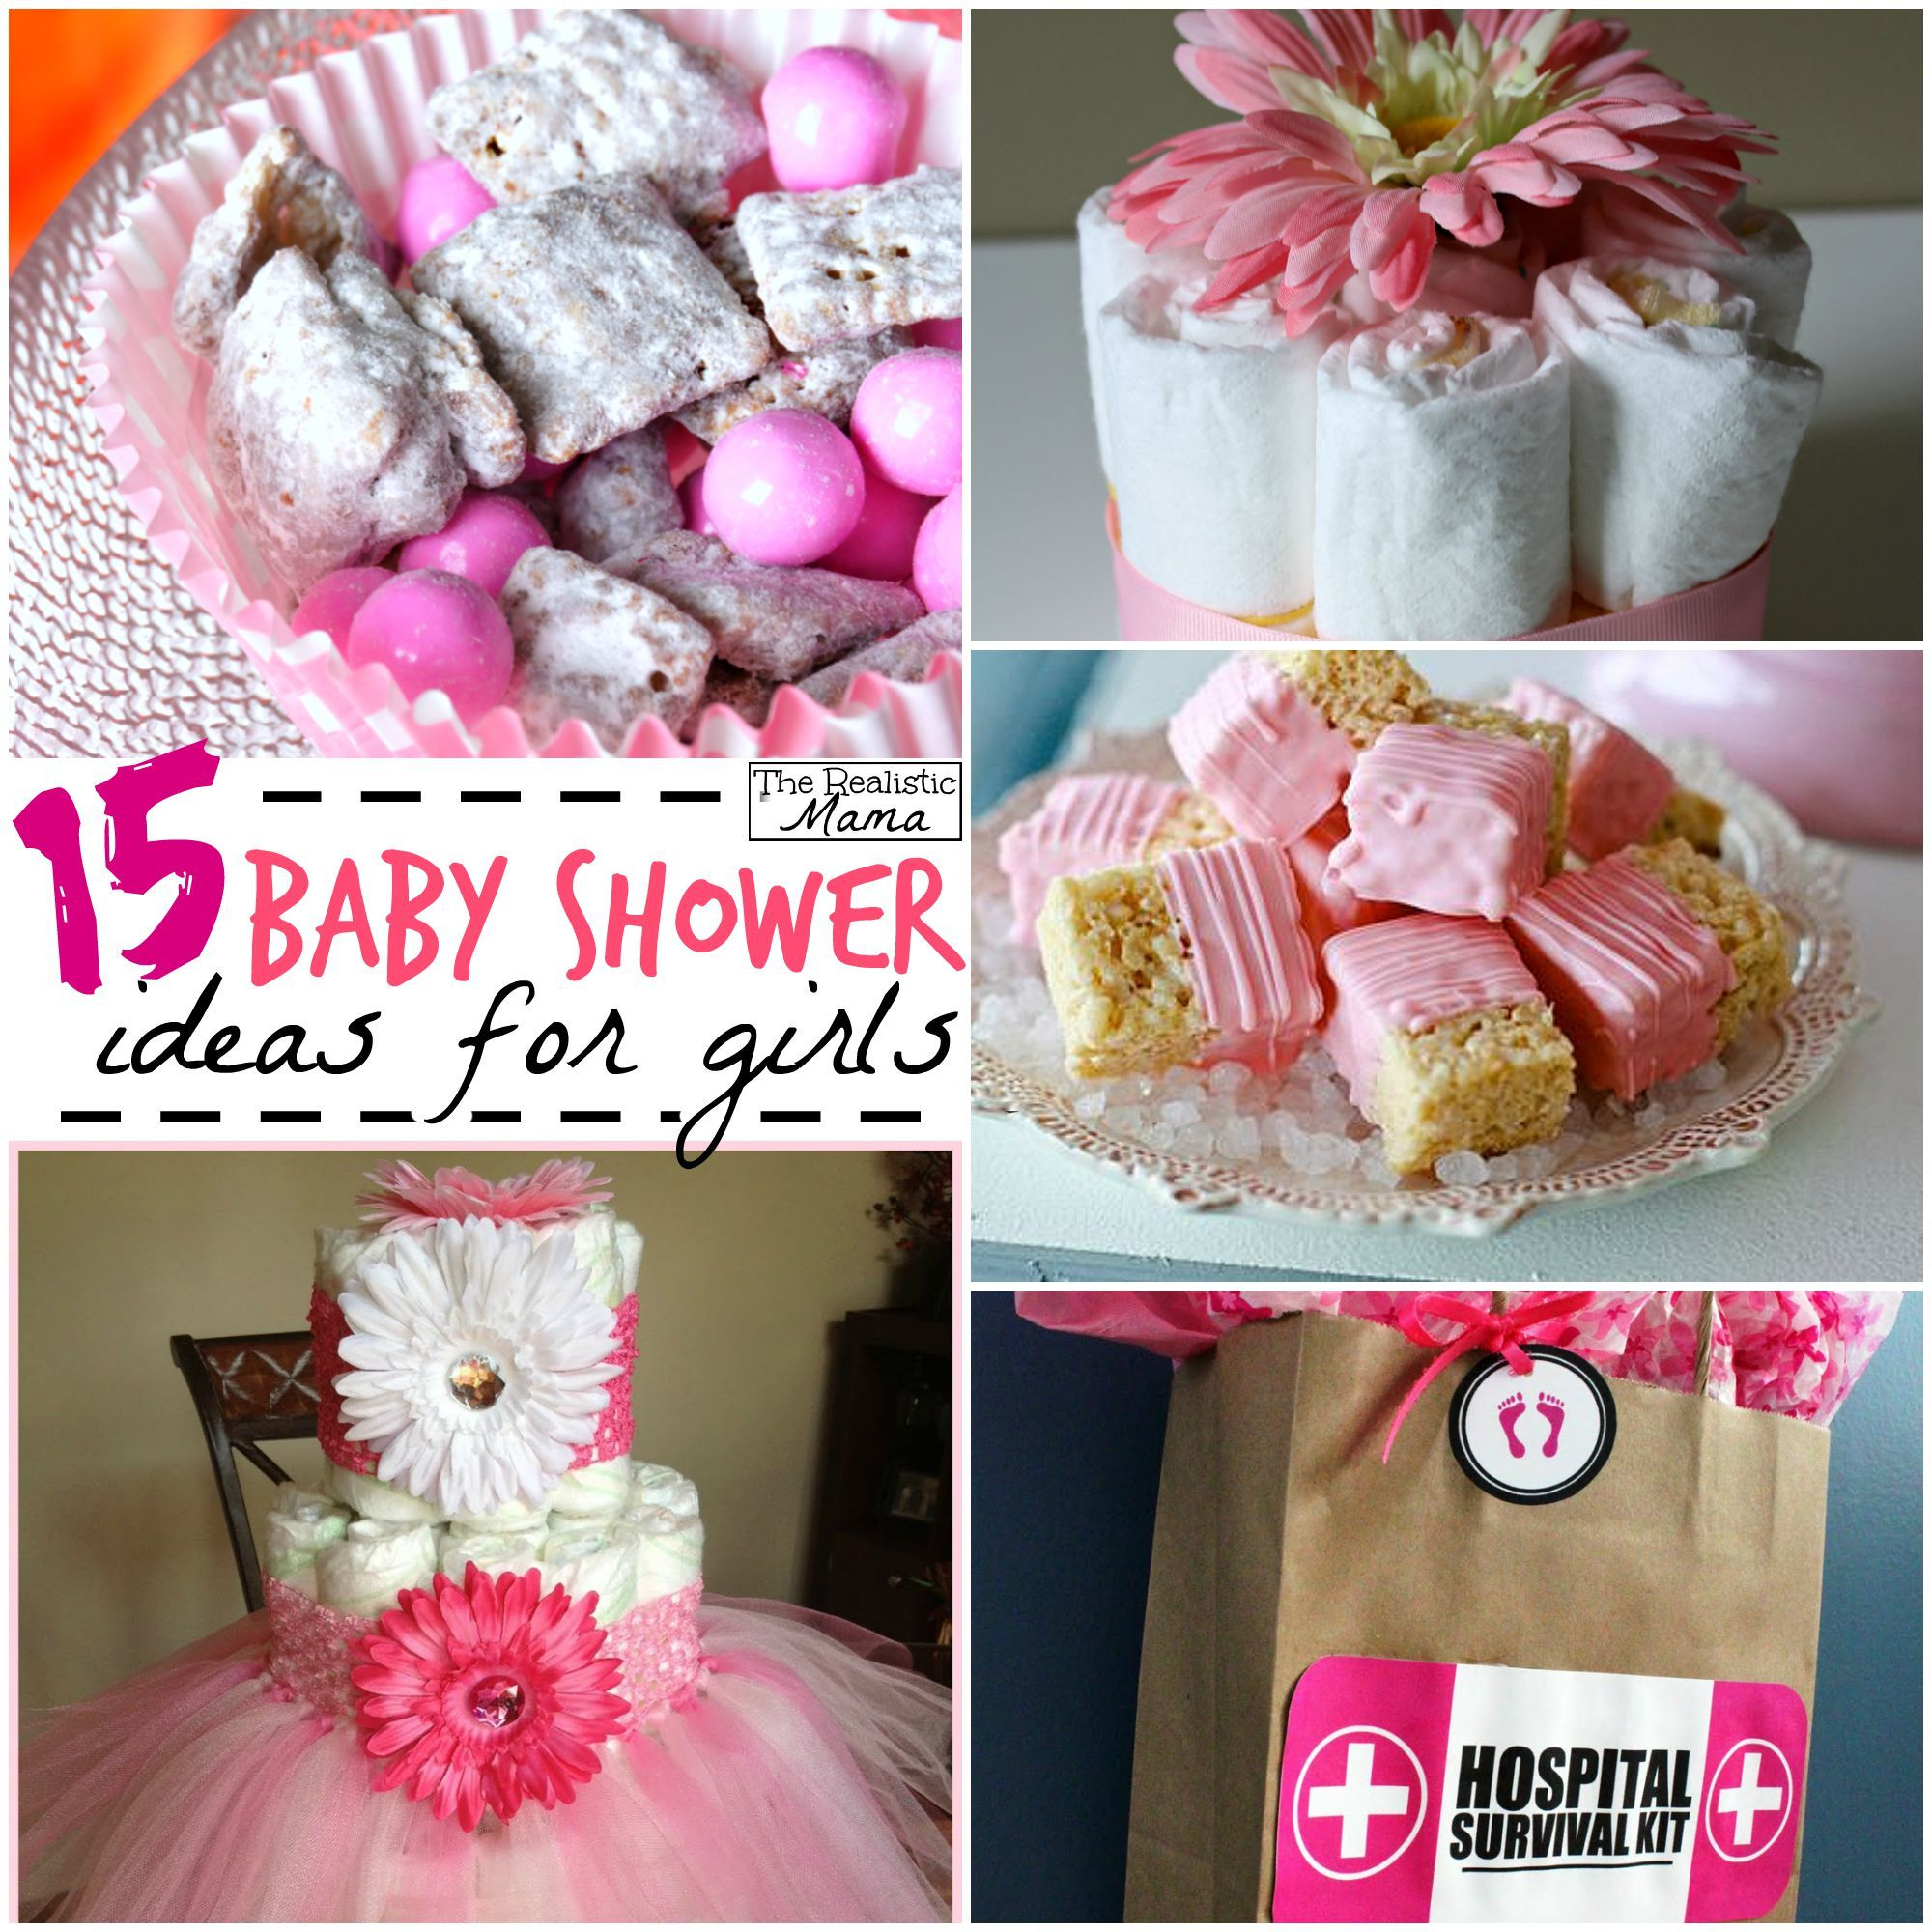 15 Baby Shower Ideas for Girls | Baby showers, Shower ideas and ...